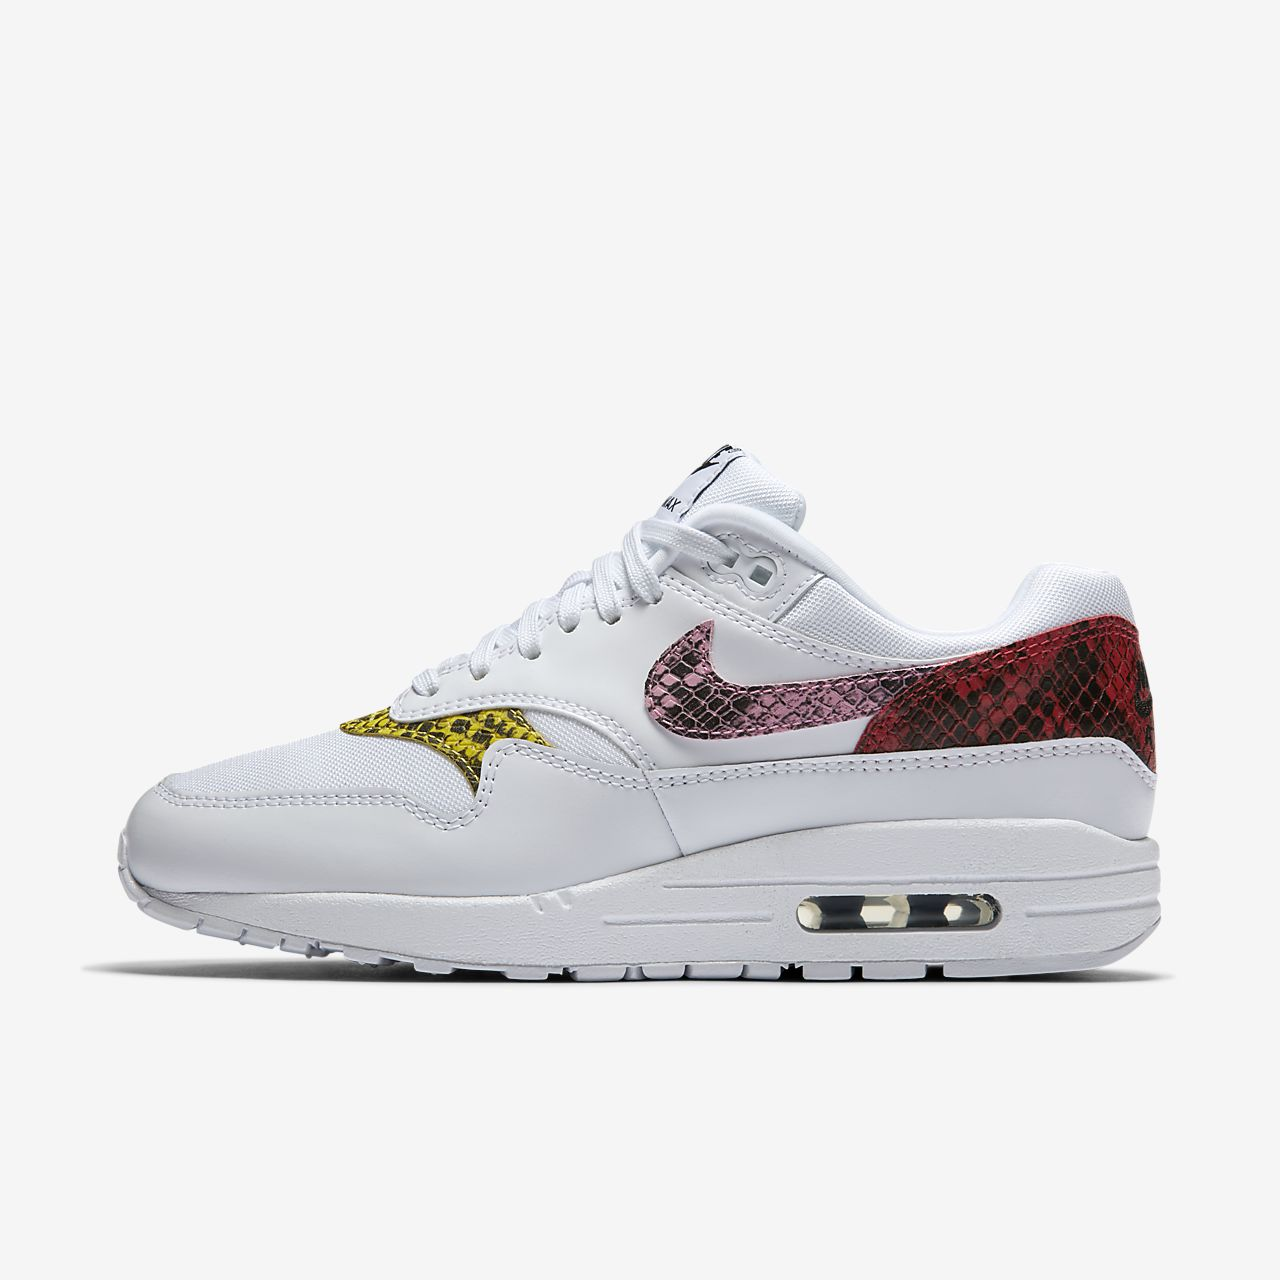 competitive price 54852 608f0 ... Chaussure Nike Air Max 1 Premium Animal pour Femme